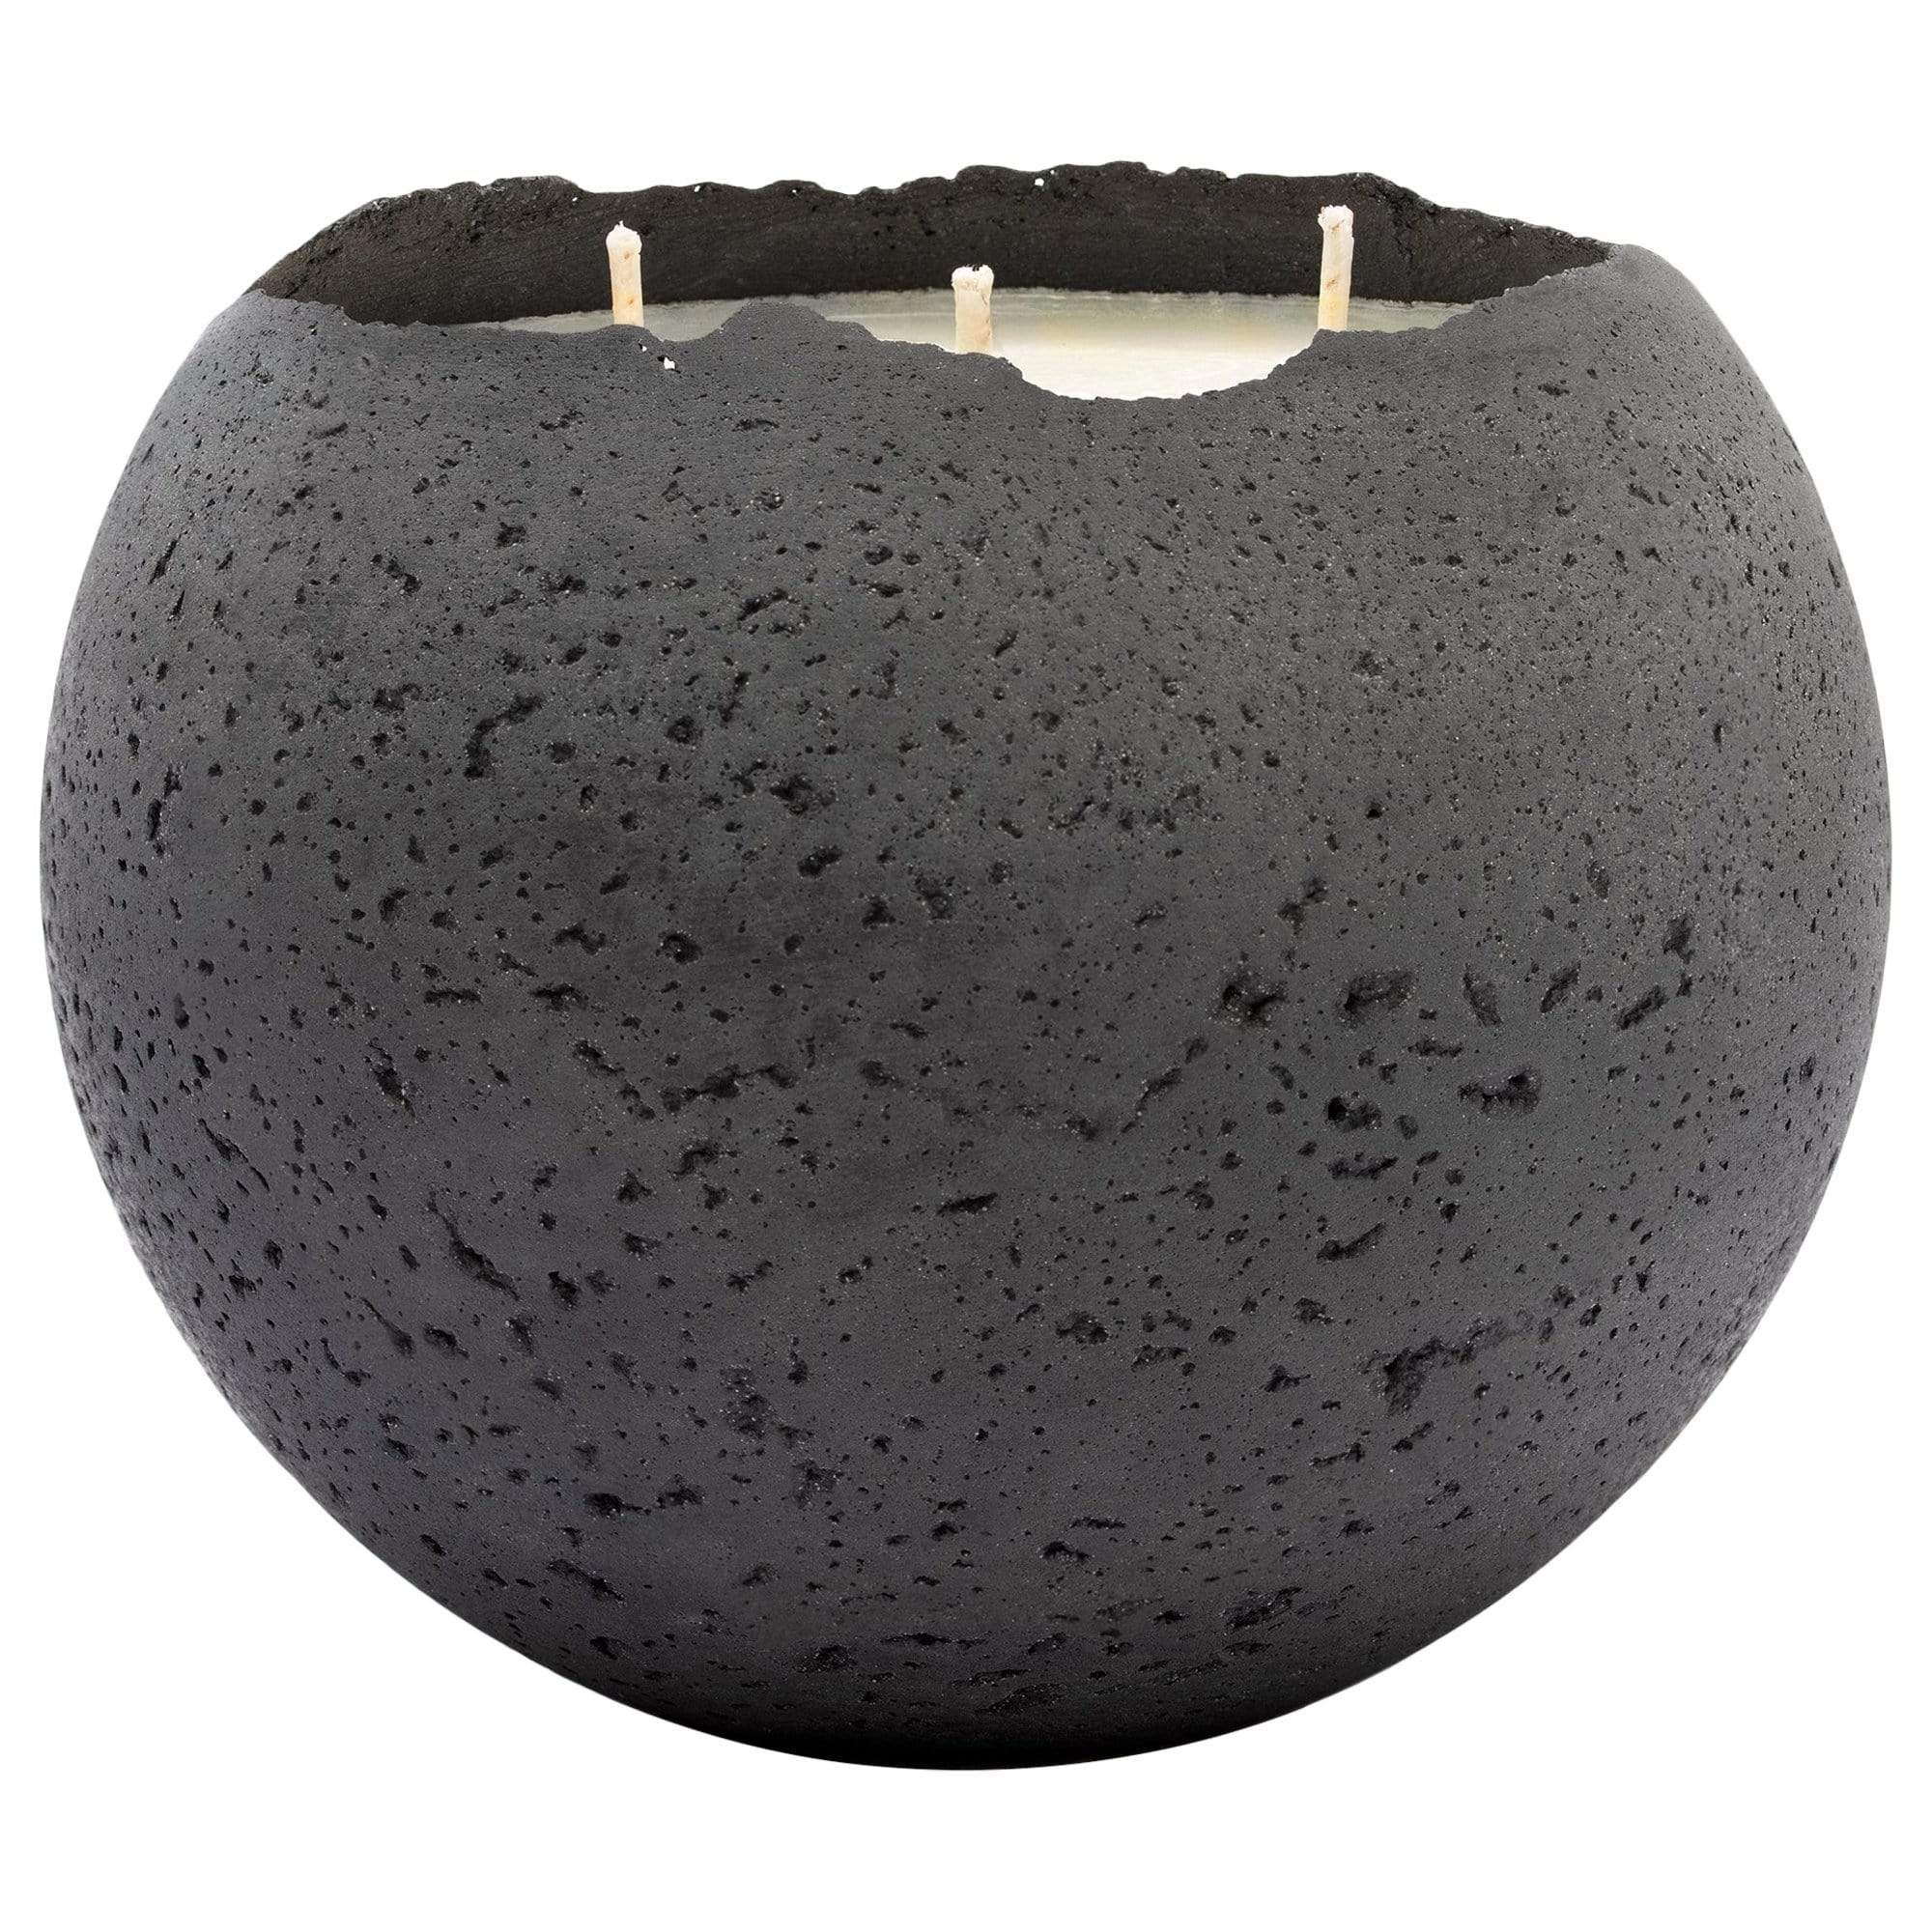 Konzuk Candles + Diffusers Charcoal XL Orbis 3-Wick Concrete Candle